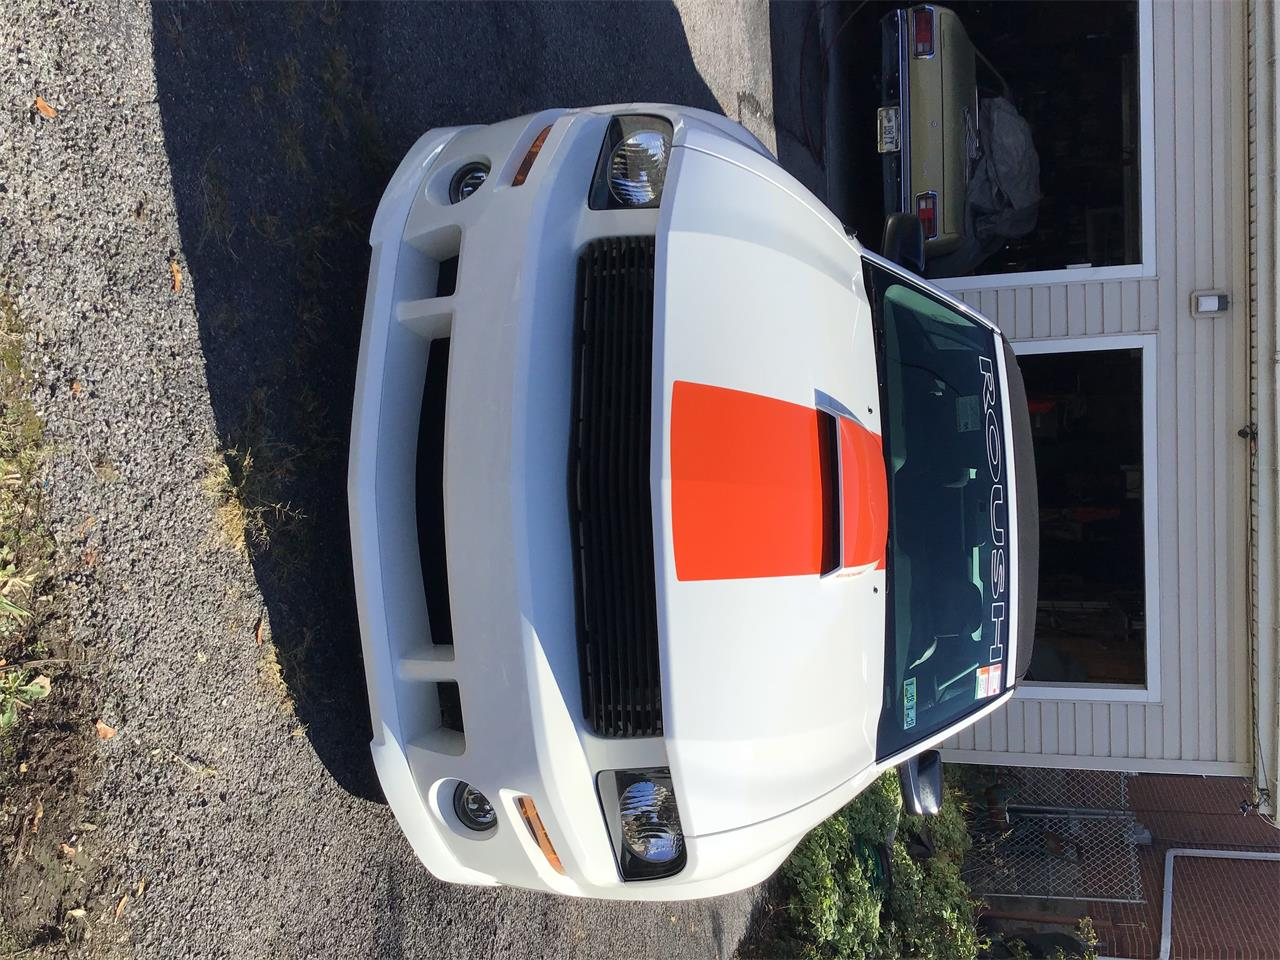 2008 Ford Mustang (Roush) (CC-1417728) for sale in Altoona, Pennsylvania